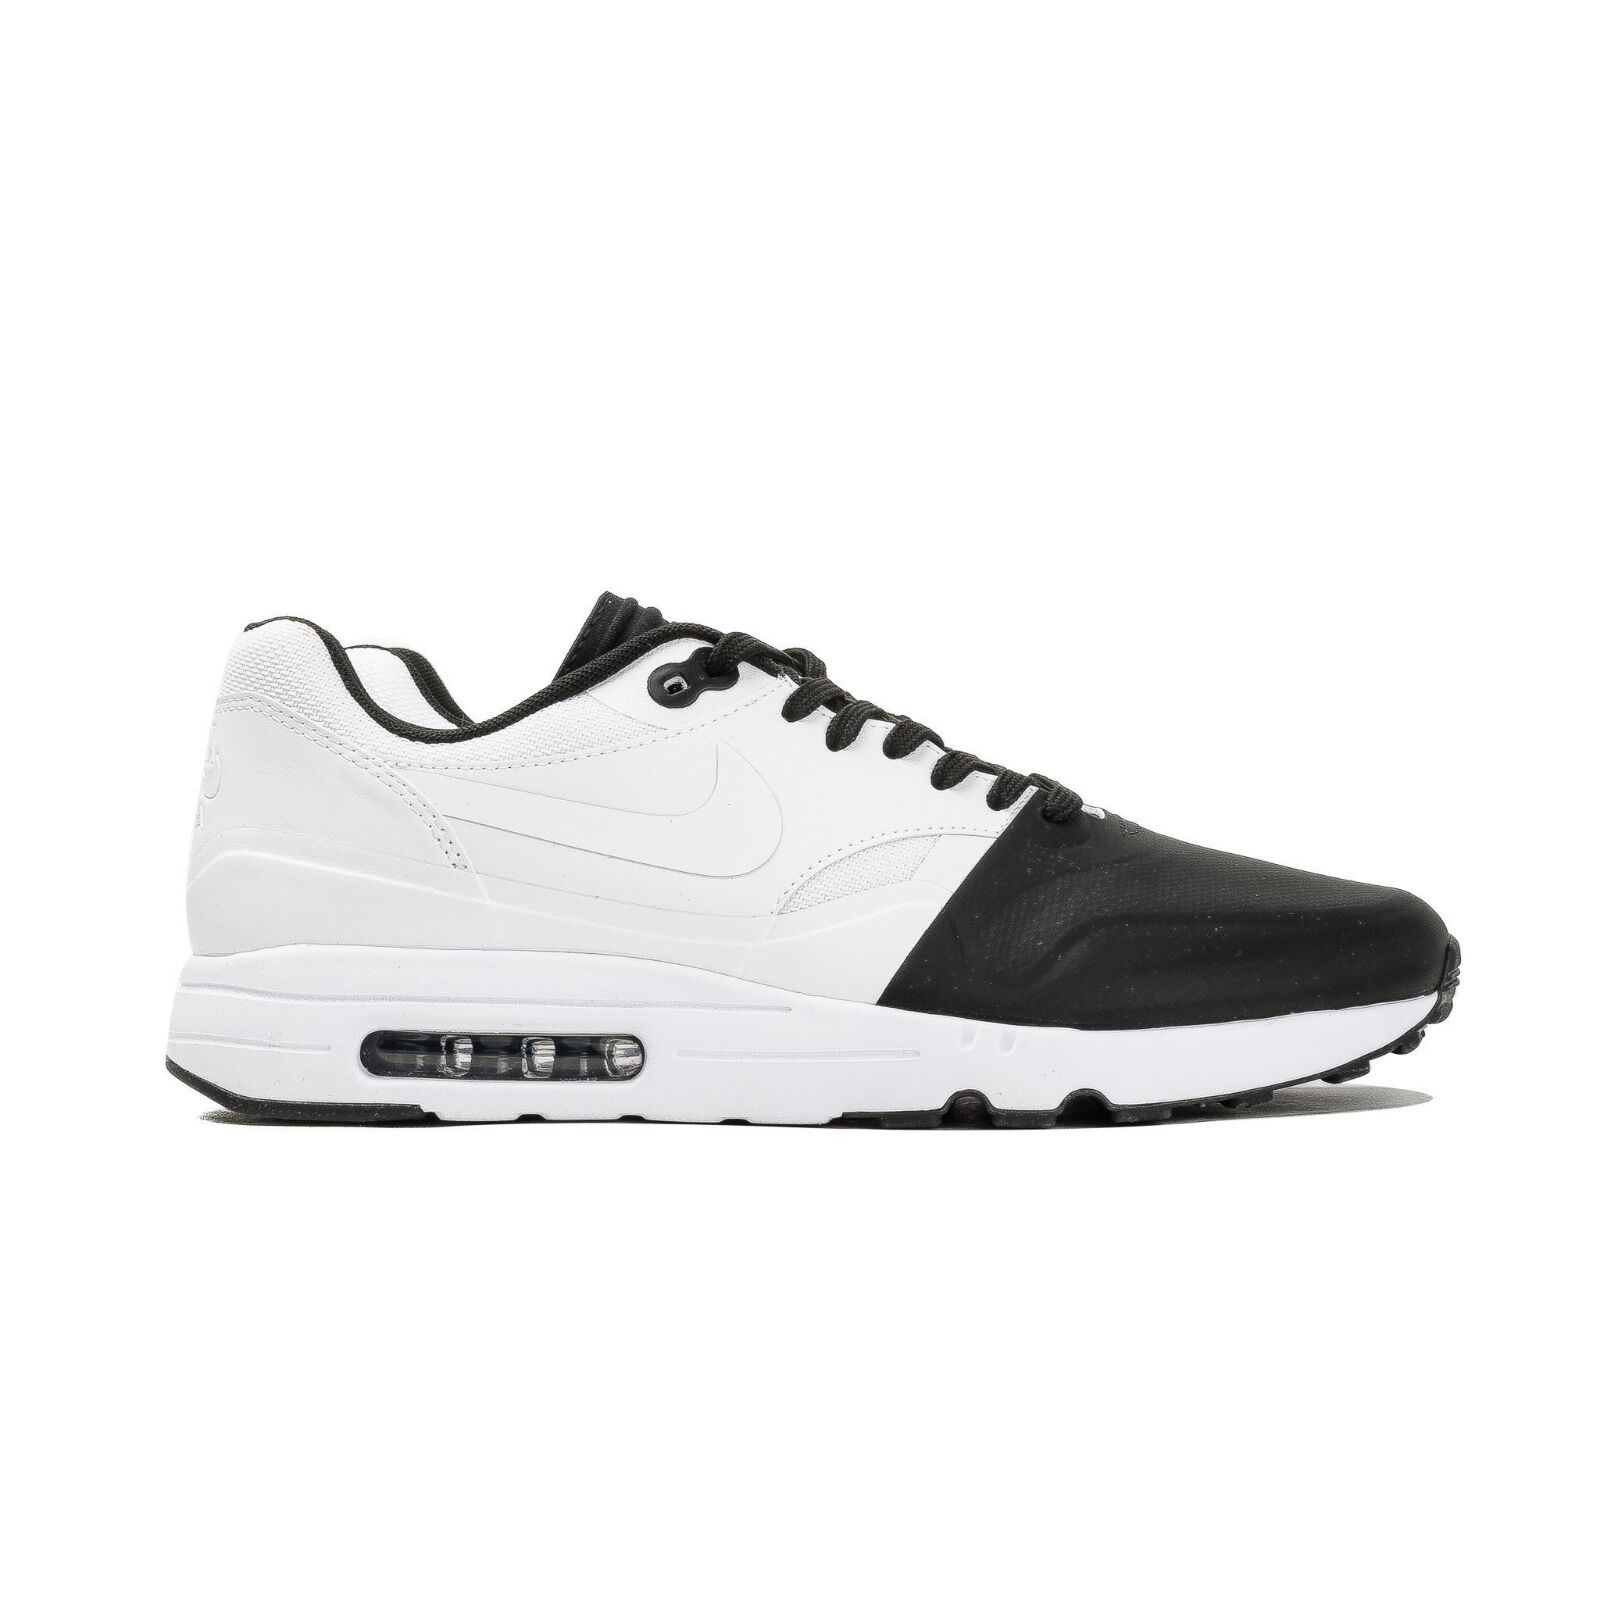 Los hombres de Nike Air Max Athletic 90 Ultra 2.0 se Athletic Max zapatillas de moda 875845 001 blanco 7ac4f3